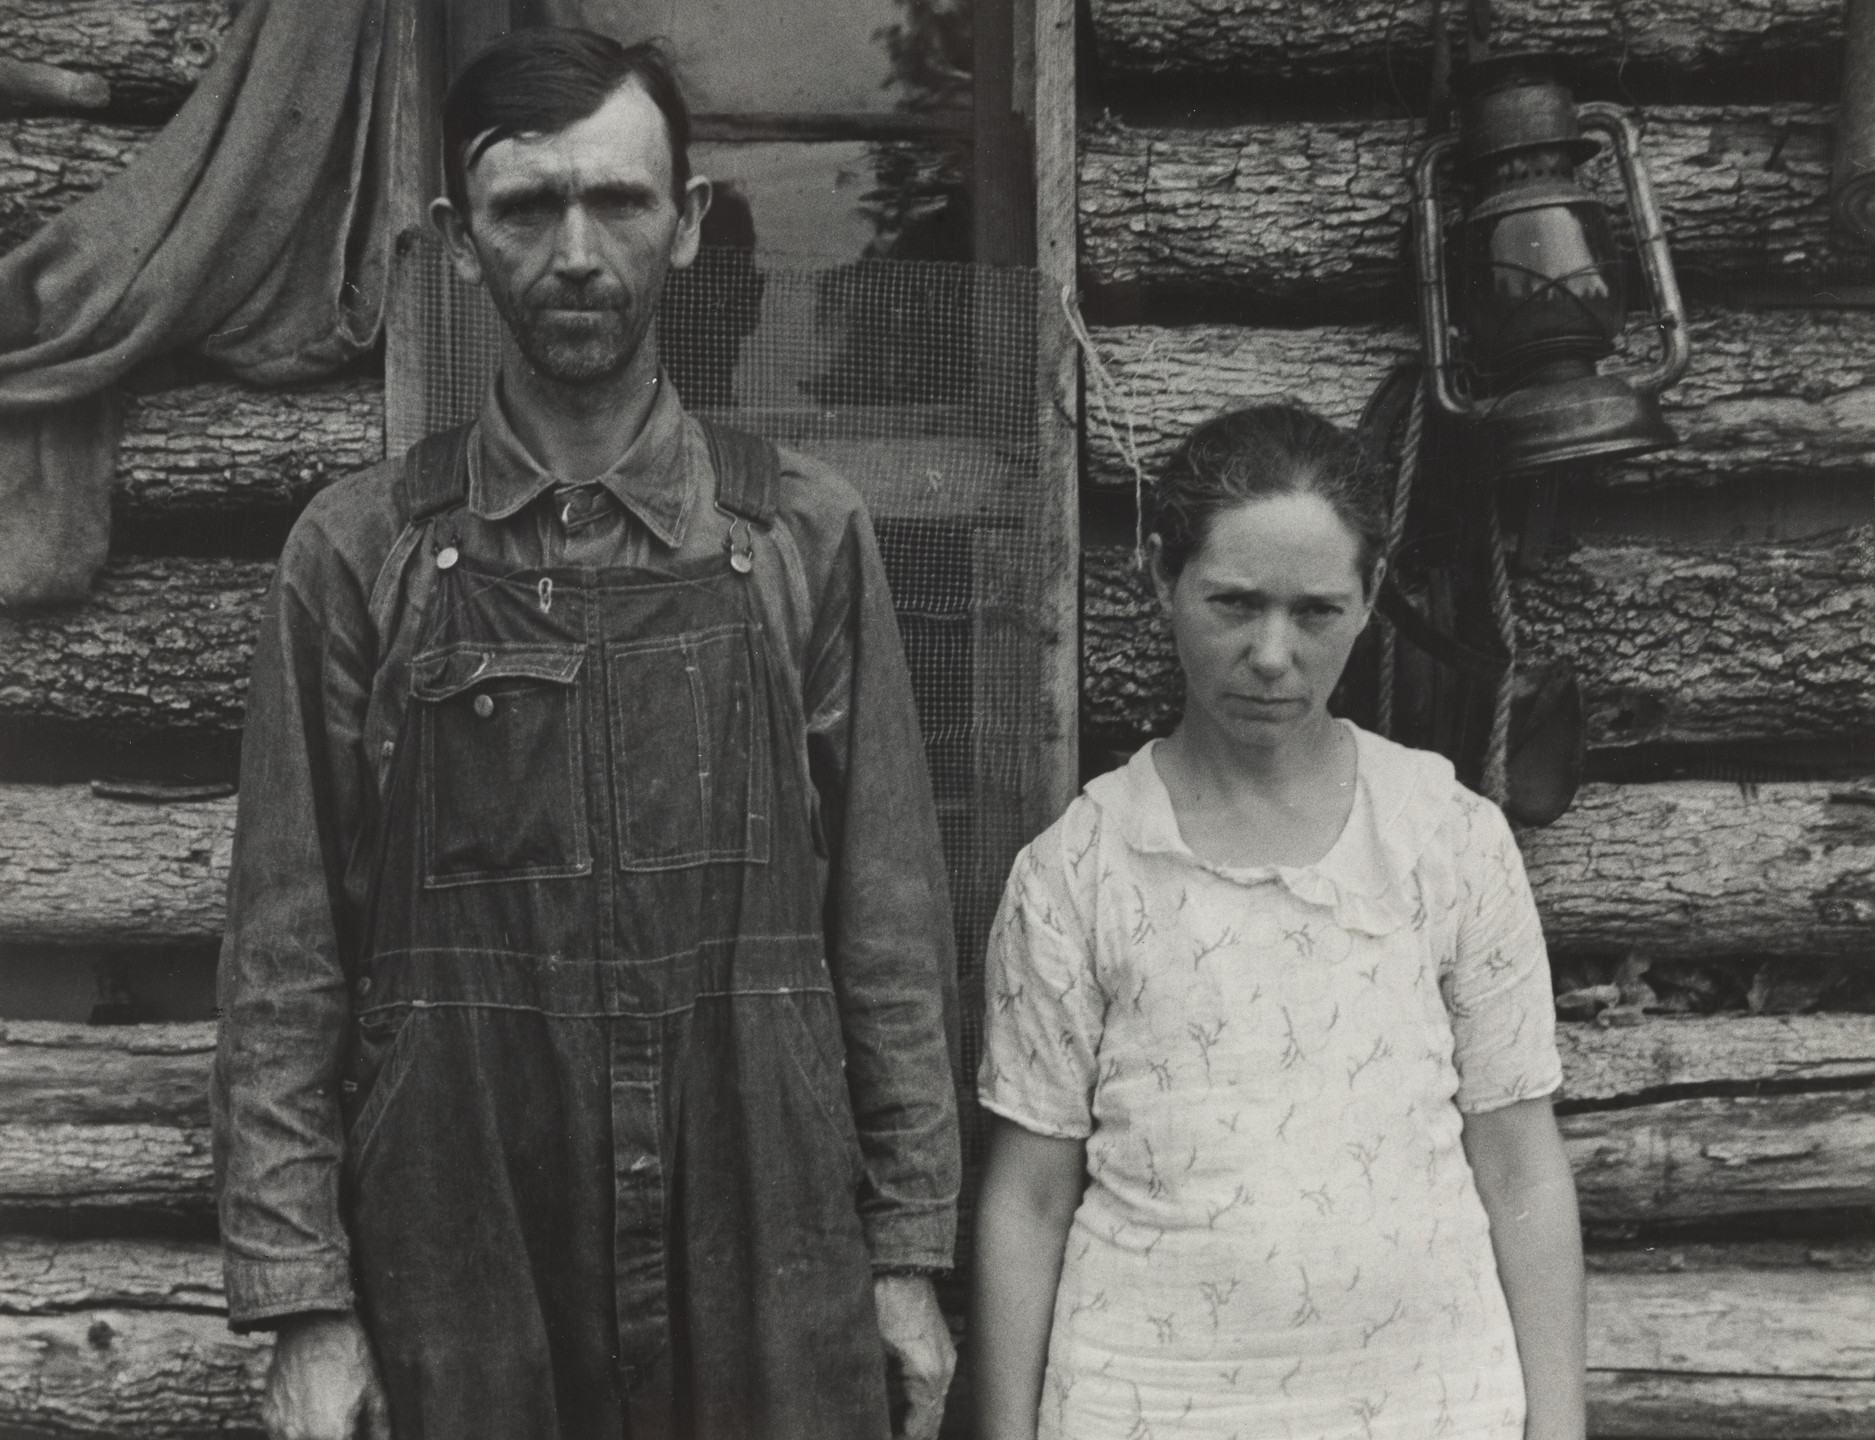 Ben Shahn. Sharecroppers, Arkansas. 1935